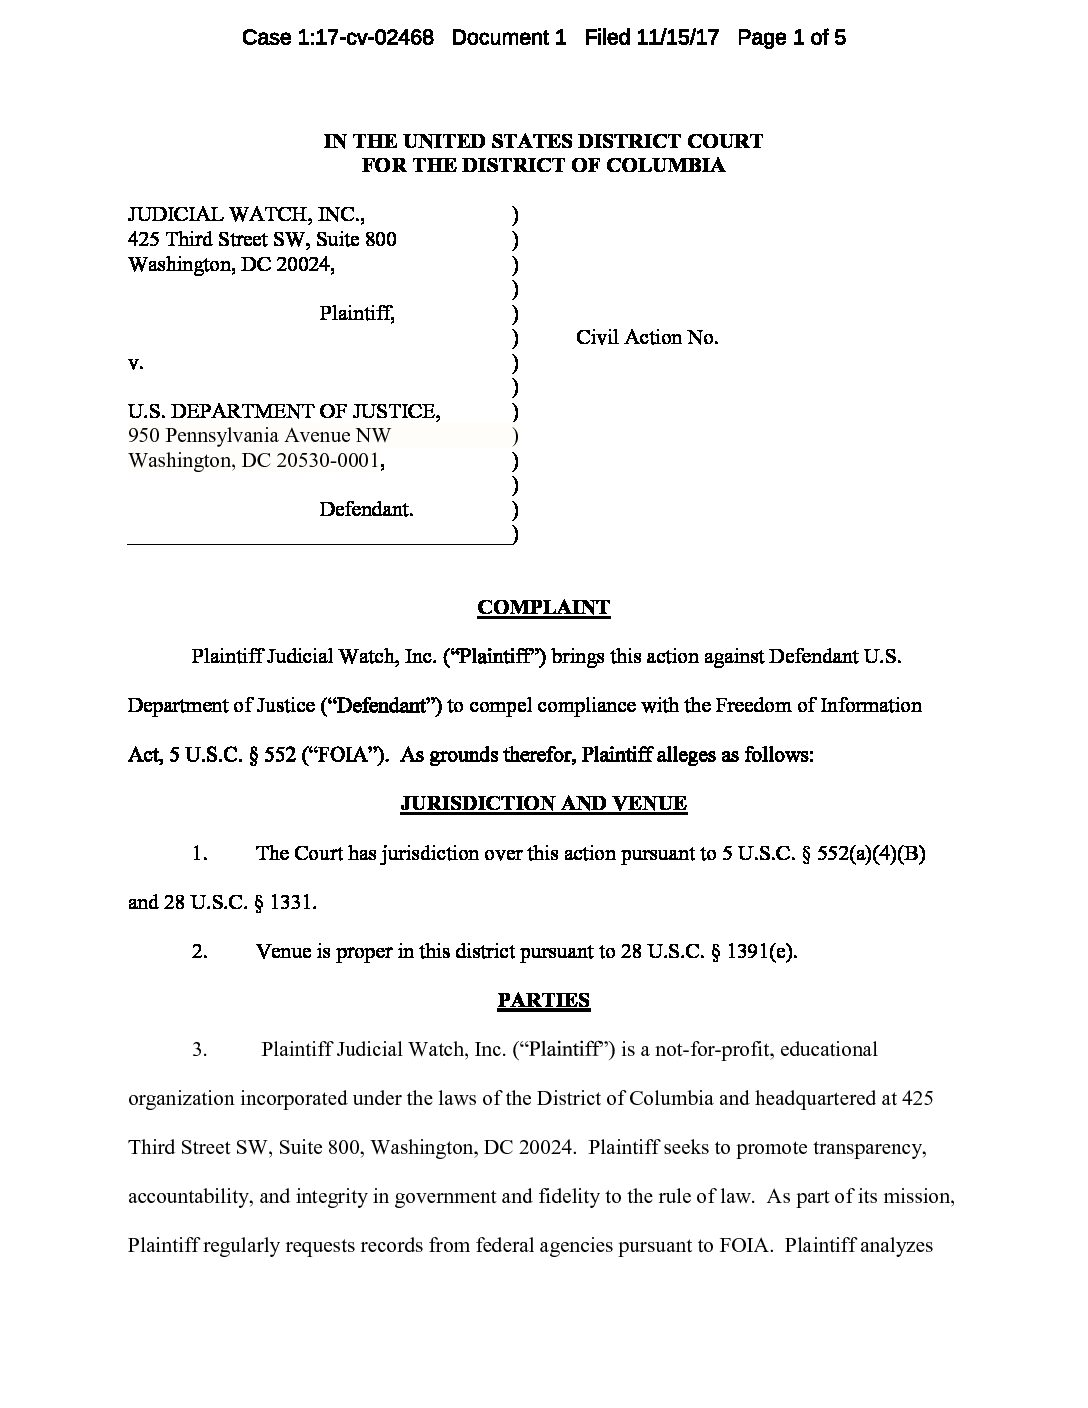 Page 1: JW v DOJ Nation of Islam Mosque complaint 02468